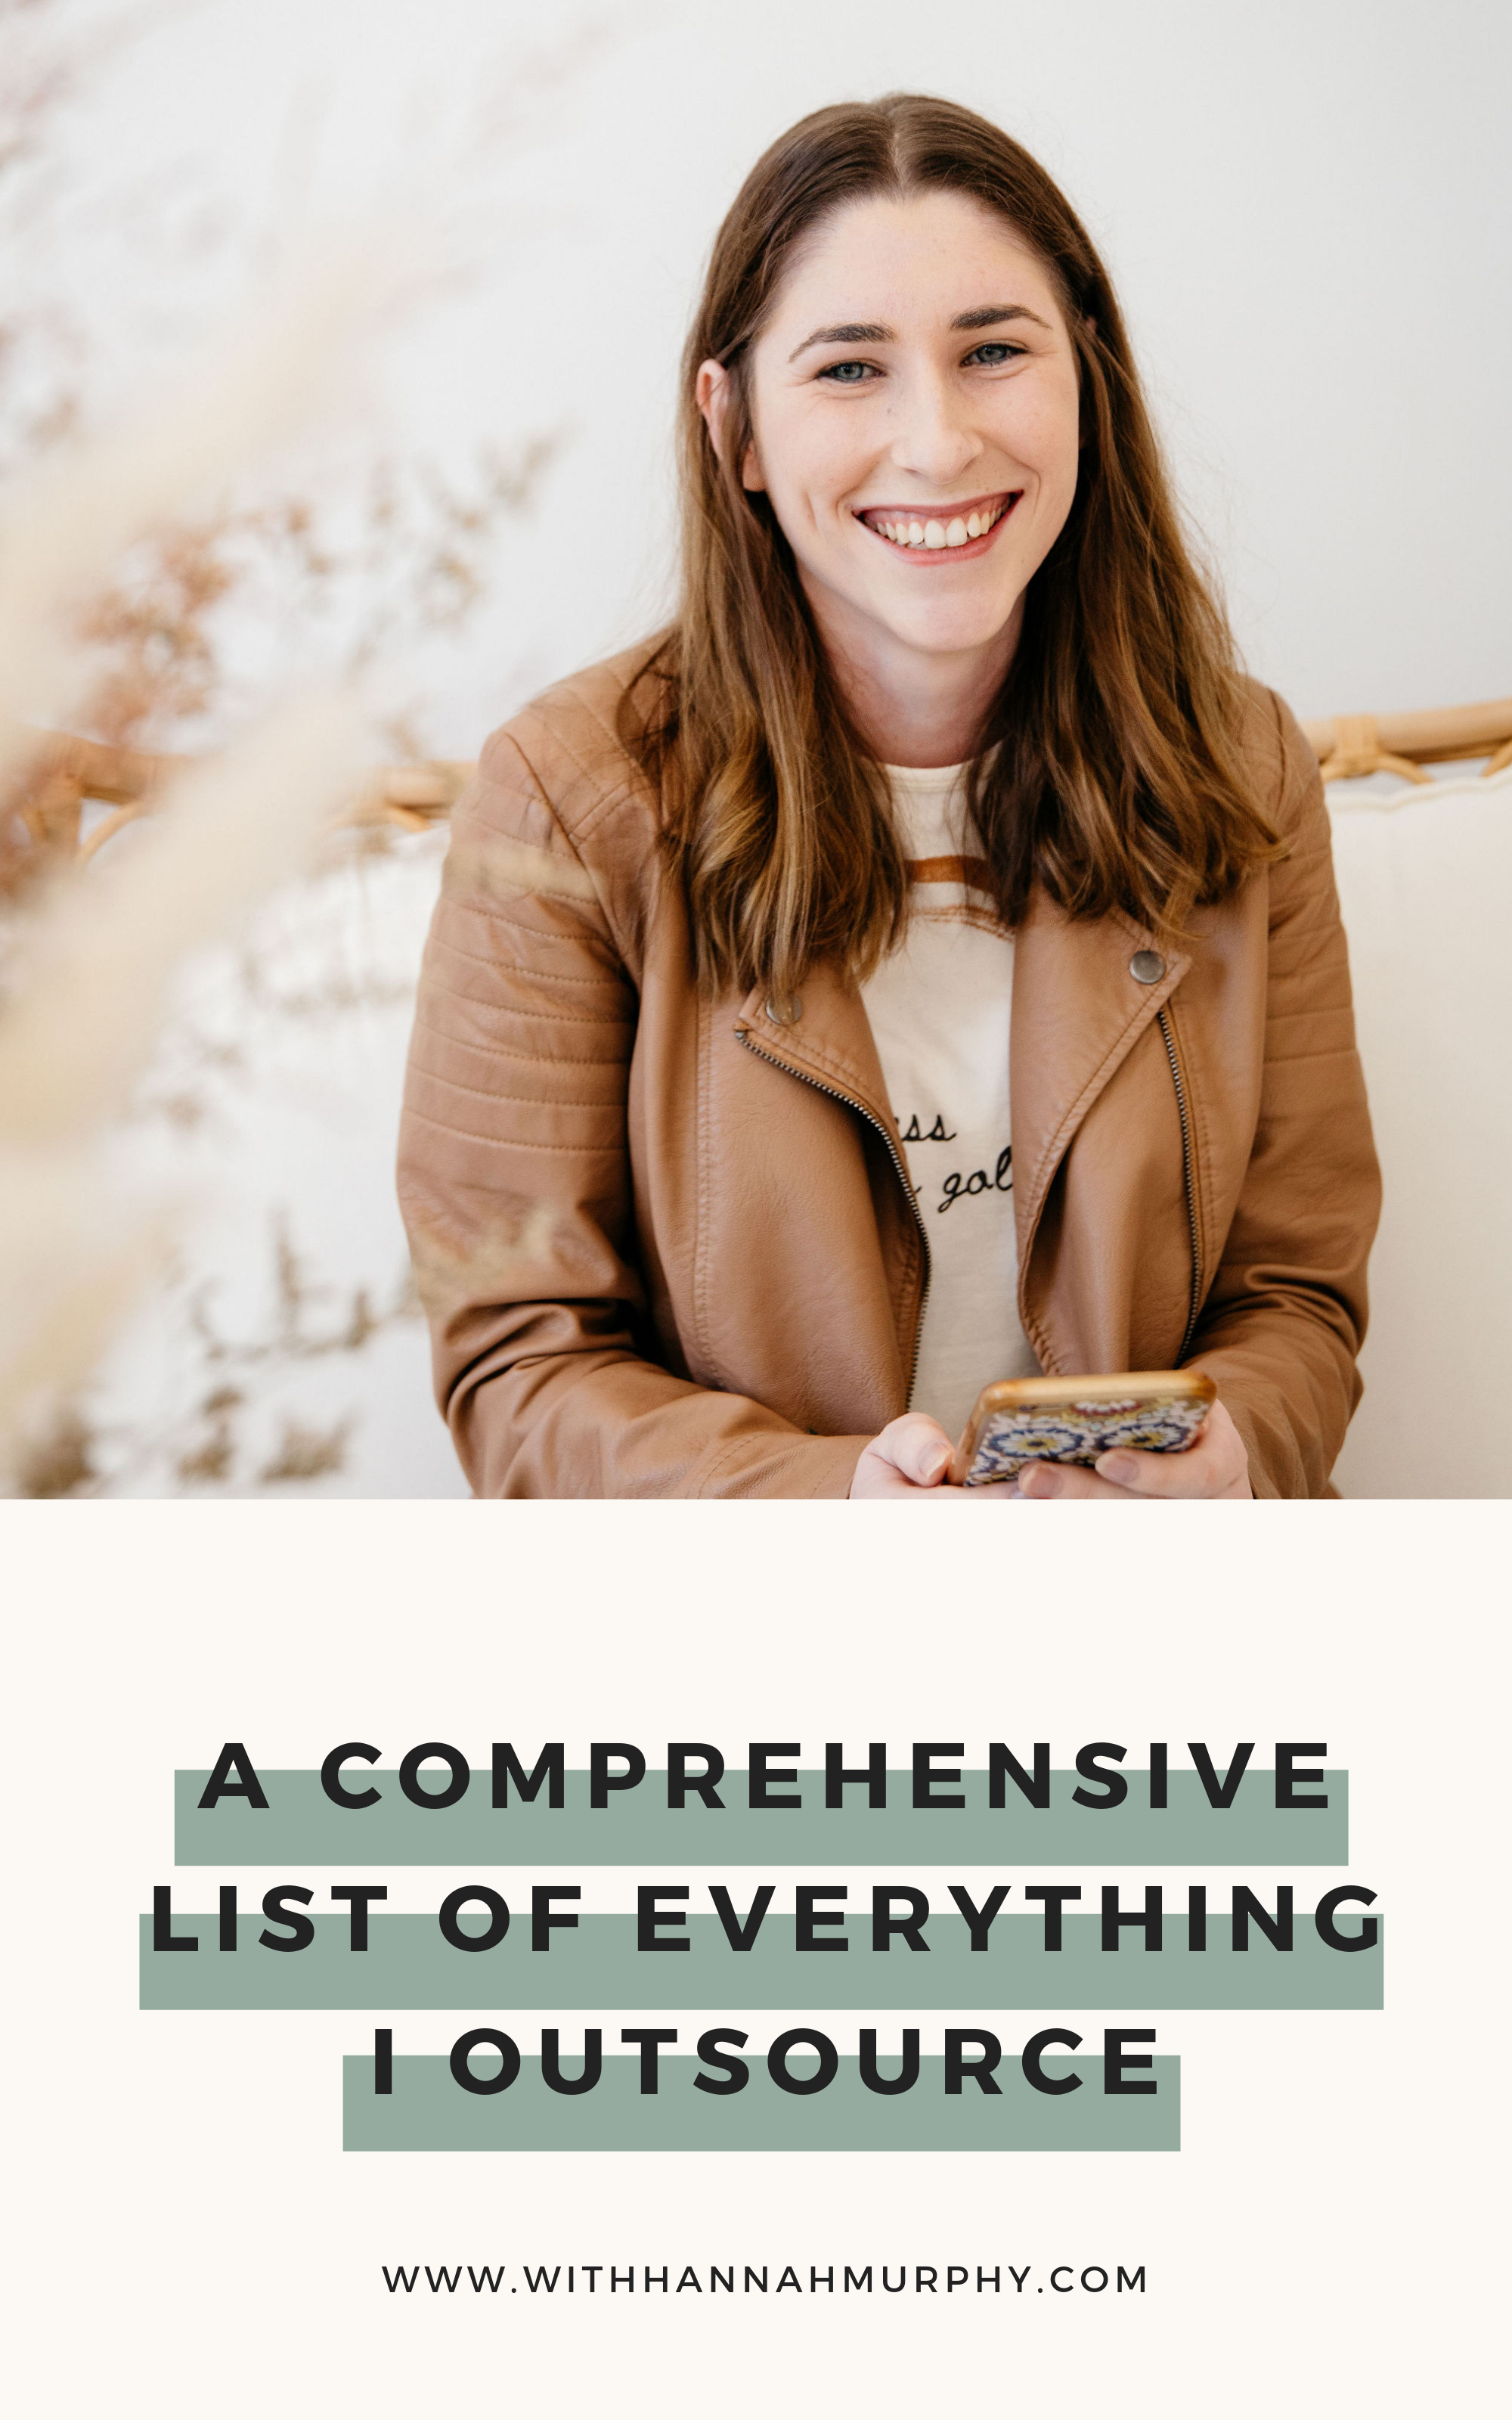 This blog takes you through the exact list of tasks I outsource in my creative small business, including the programs and people I outsource to.